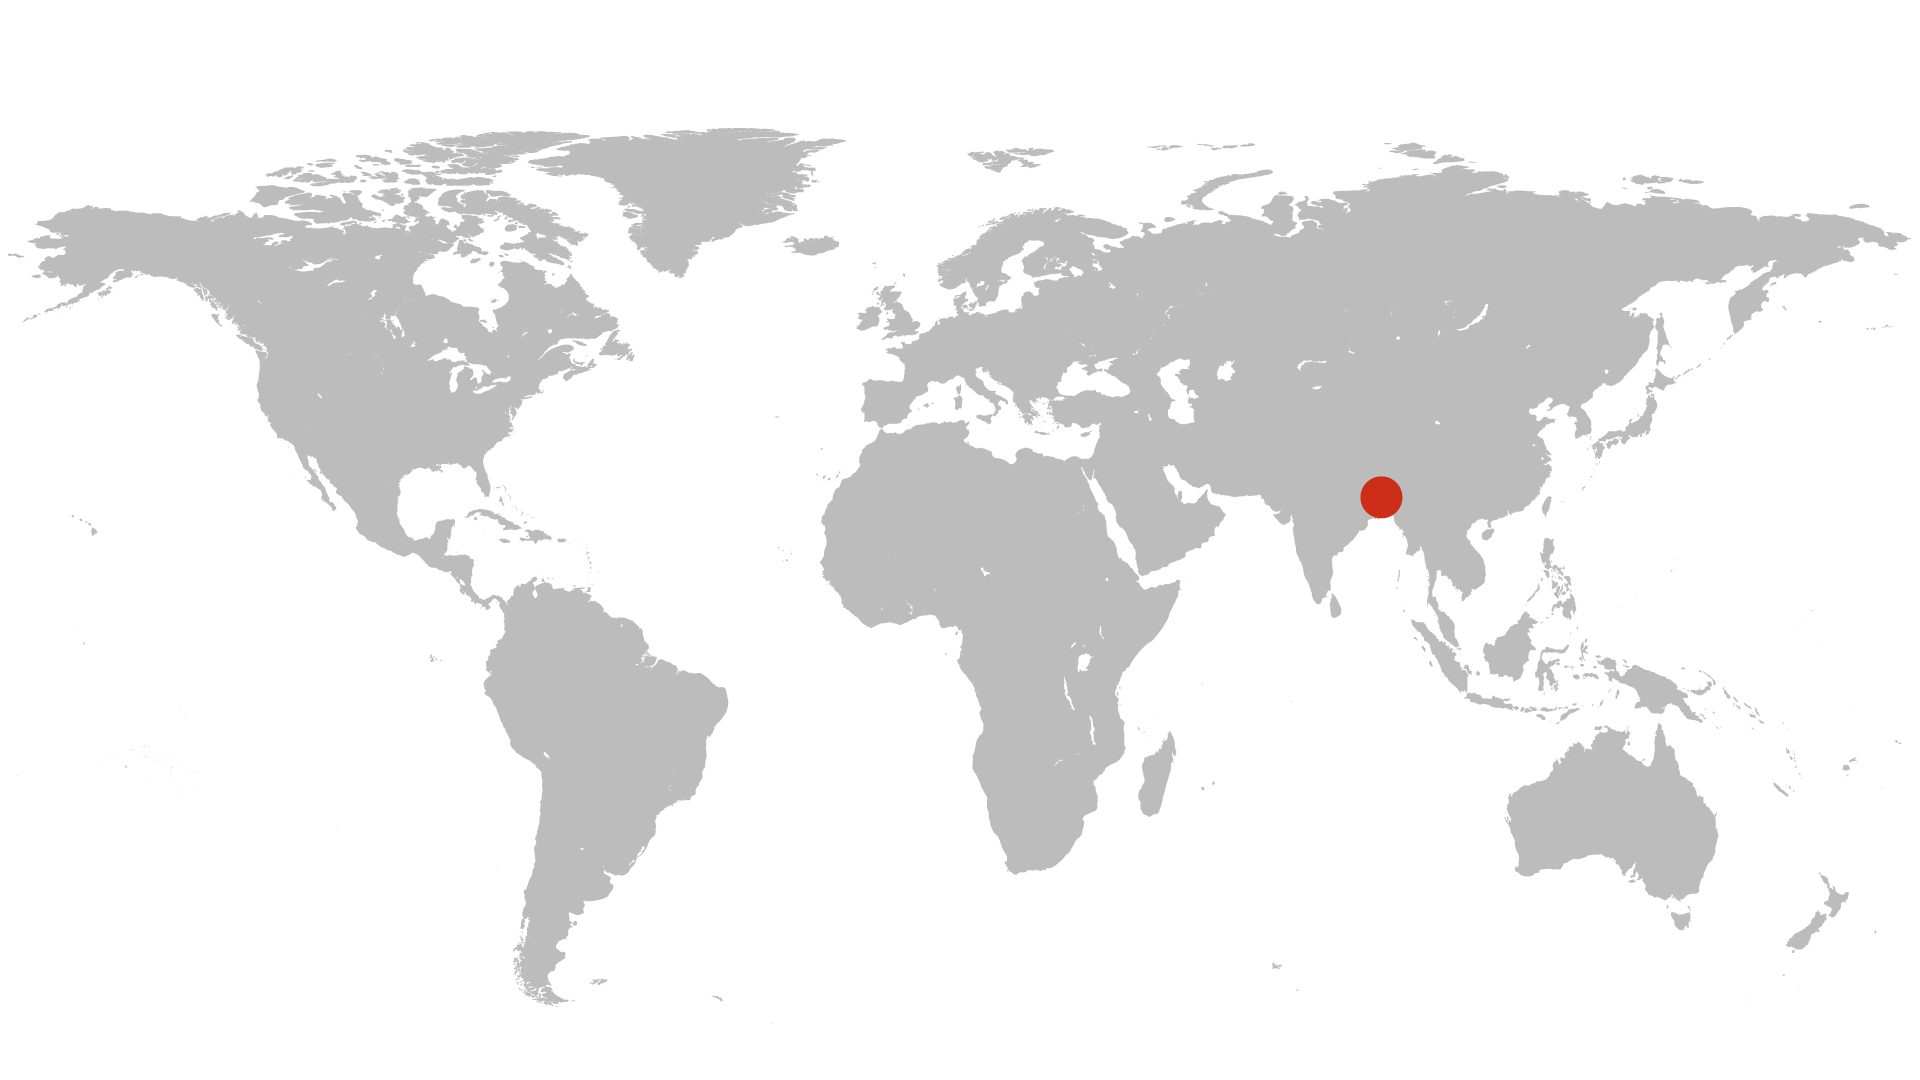 JB_WEB_World_Map_Bhutan_D02.jpg